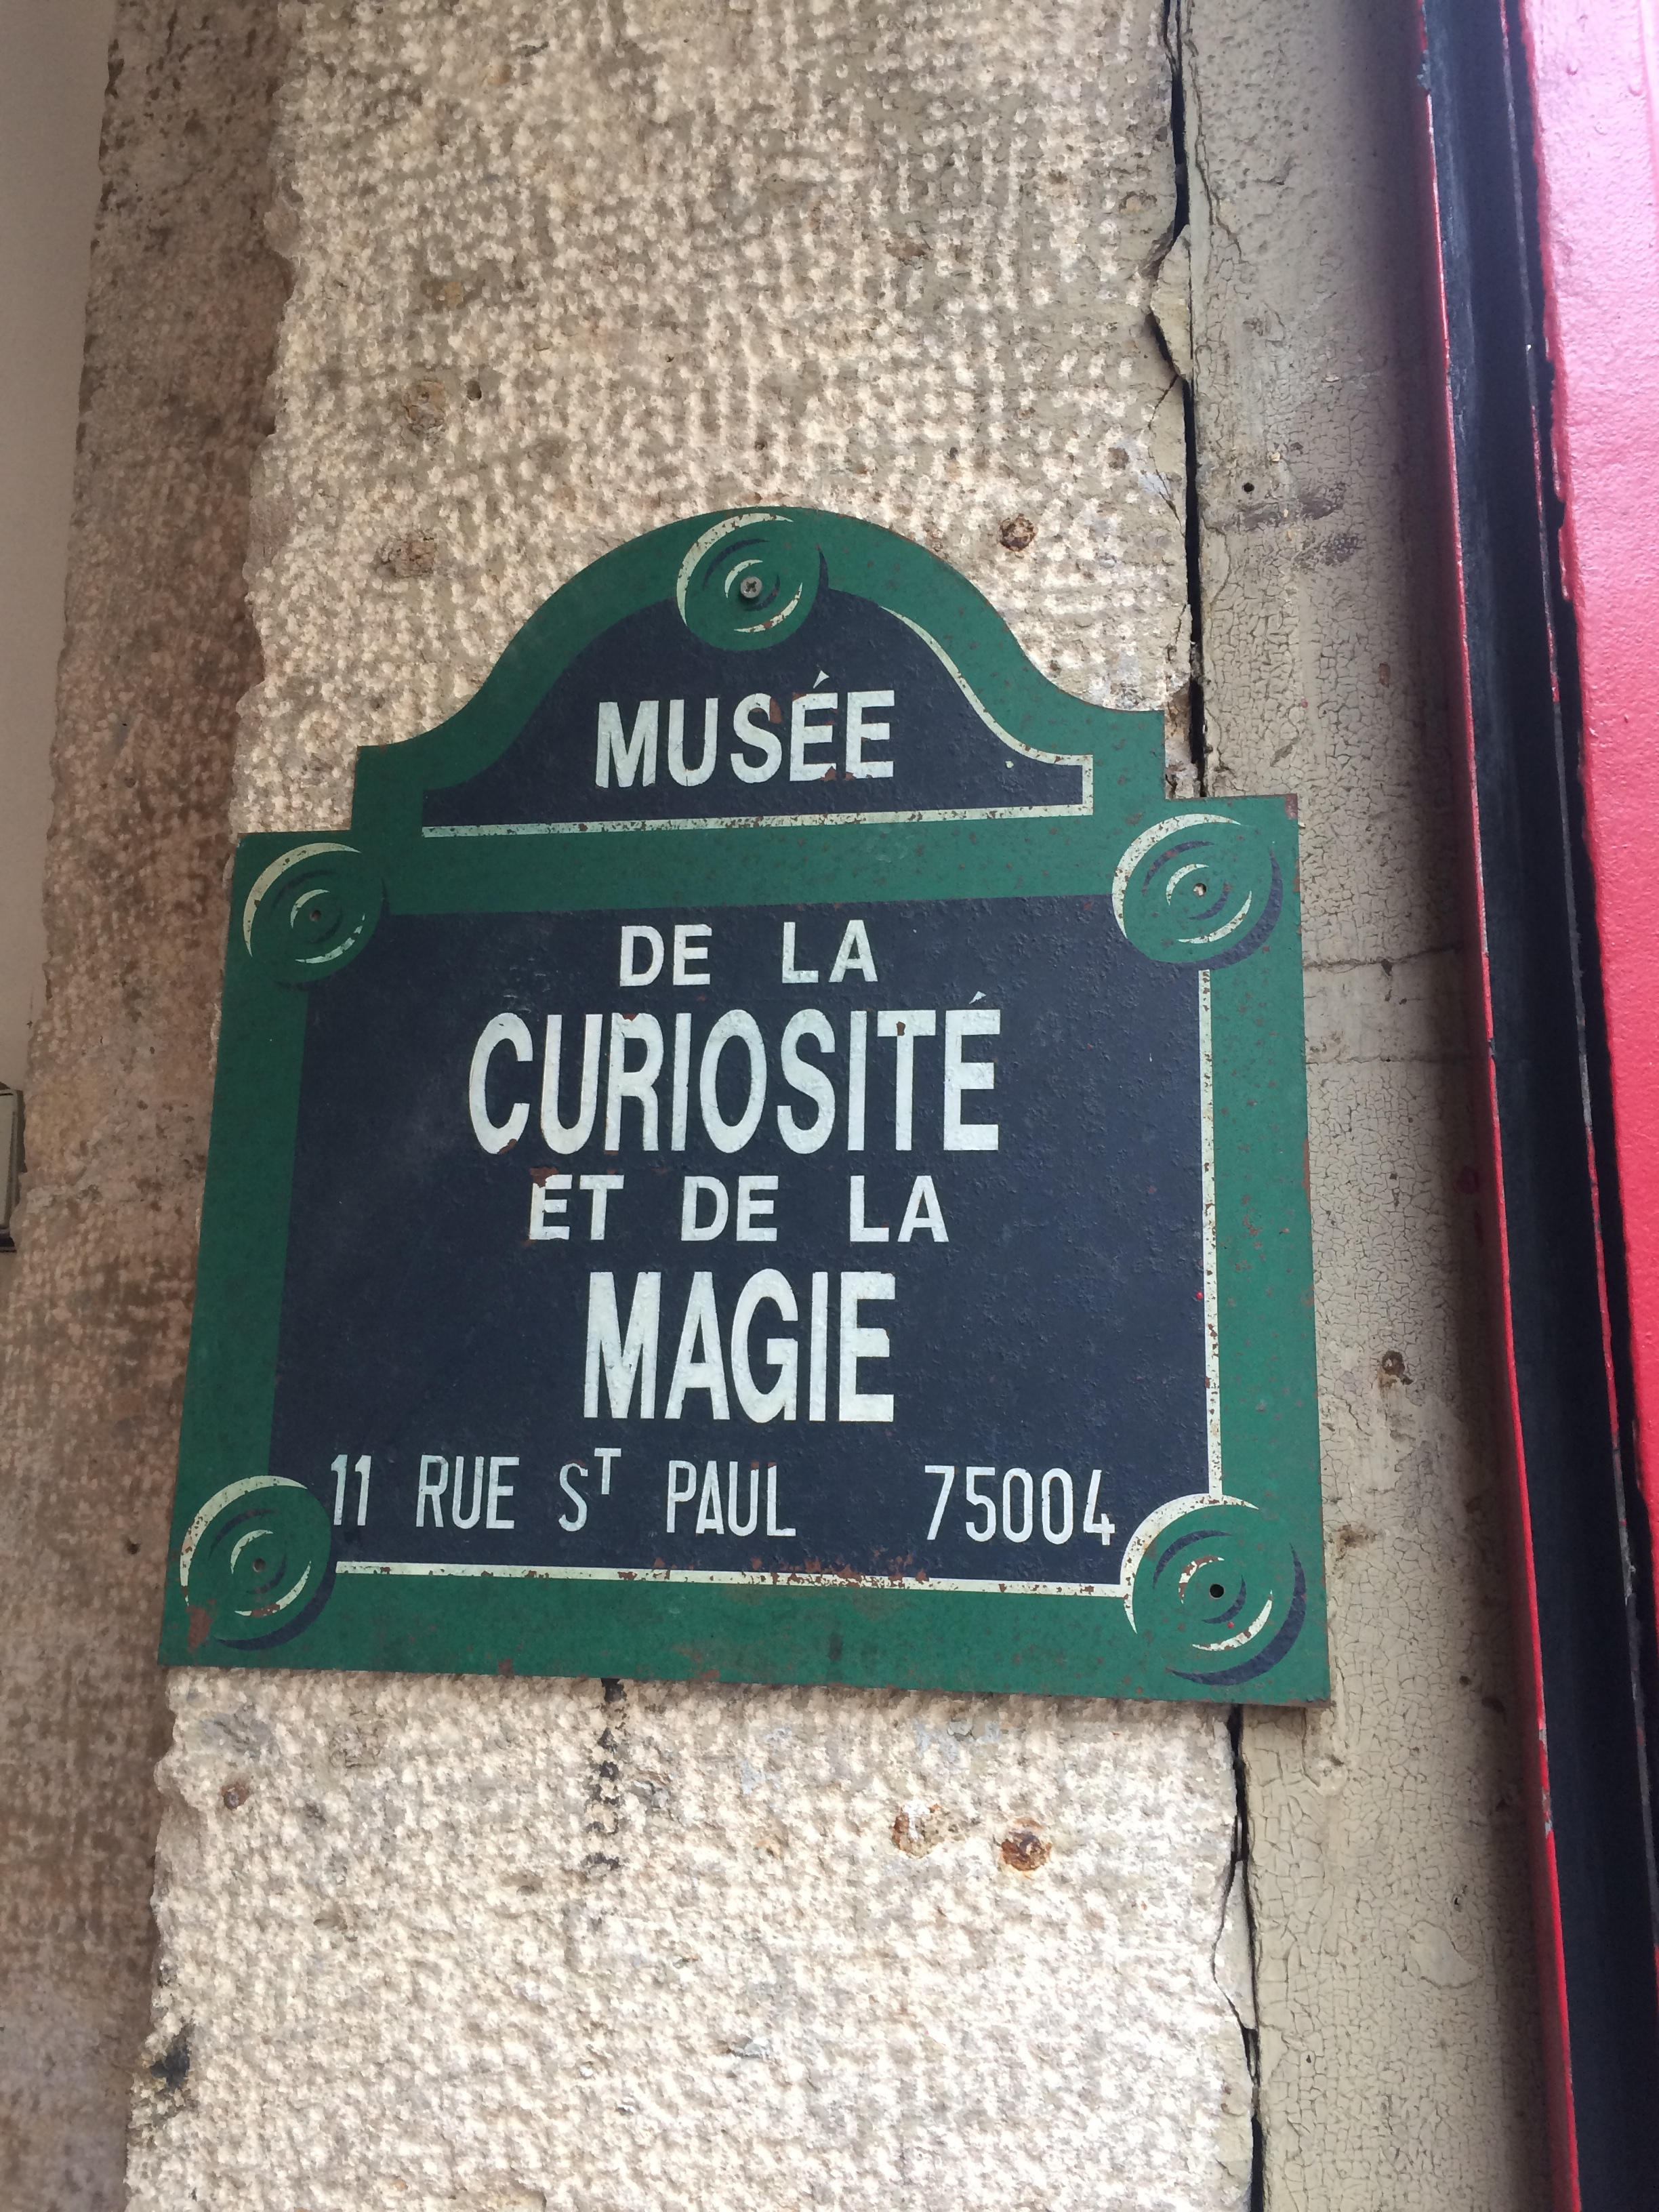 We spent some time at the Museum of Magic. It was oriented towards kids and we felt right at home!